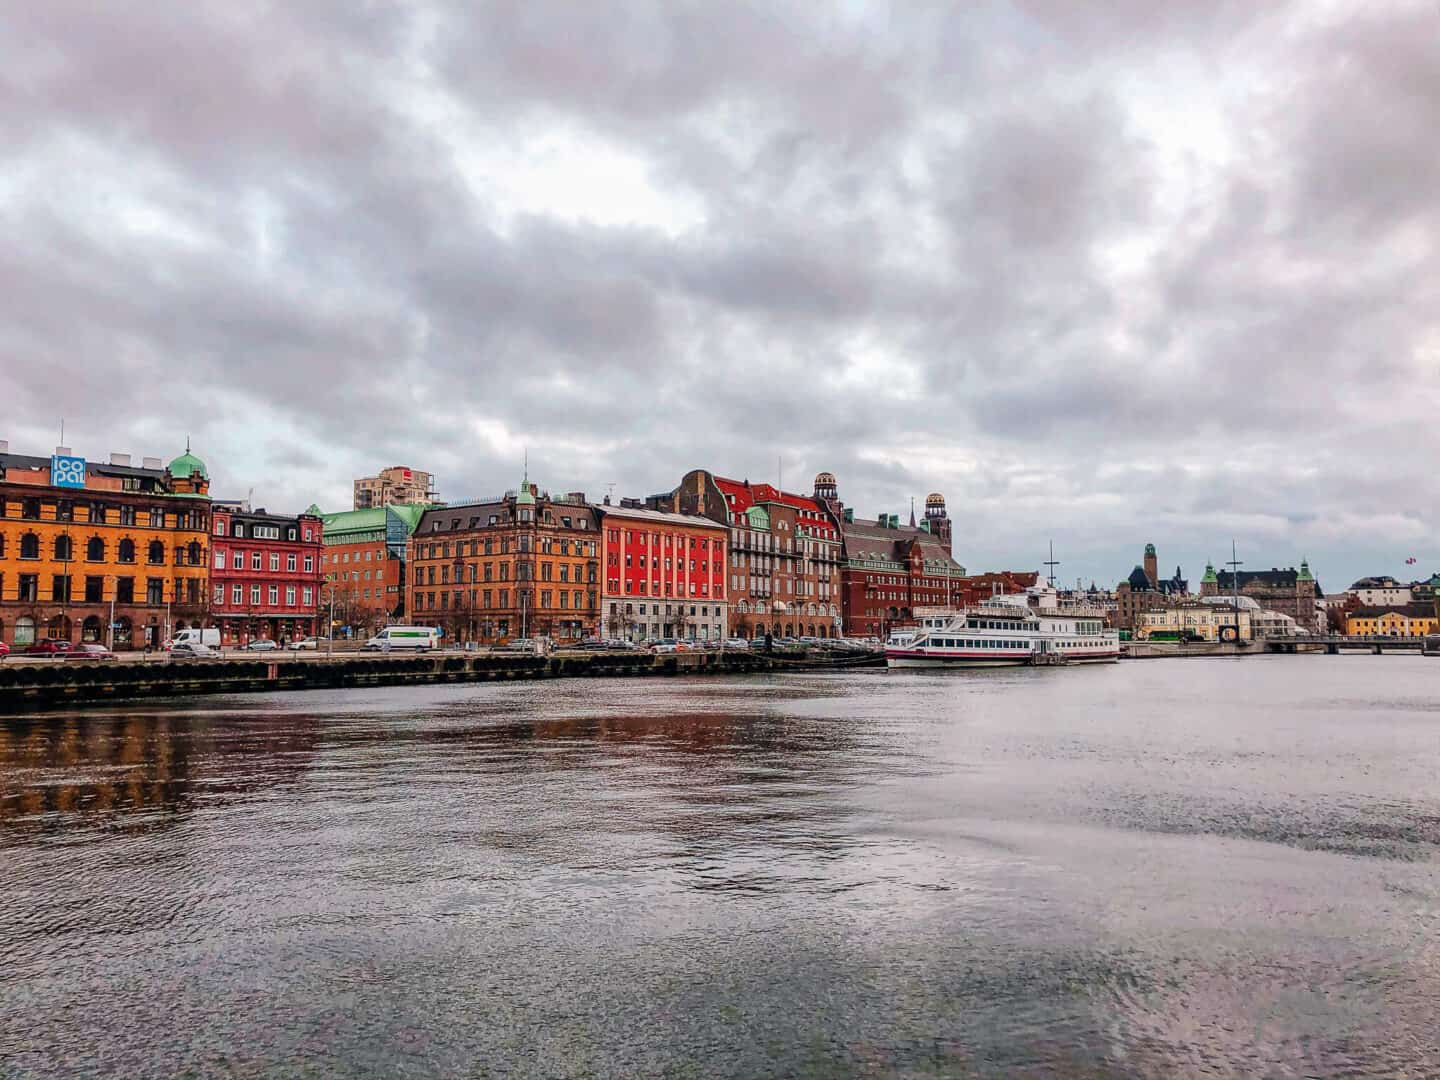 colourful buildings lining a harbour